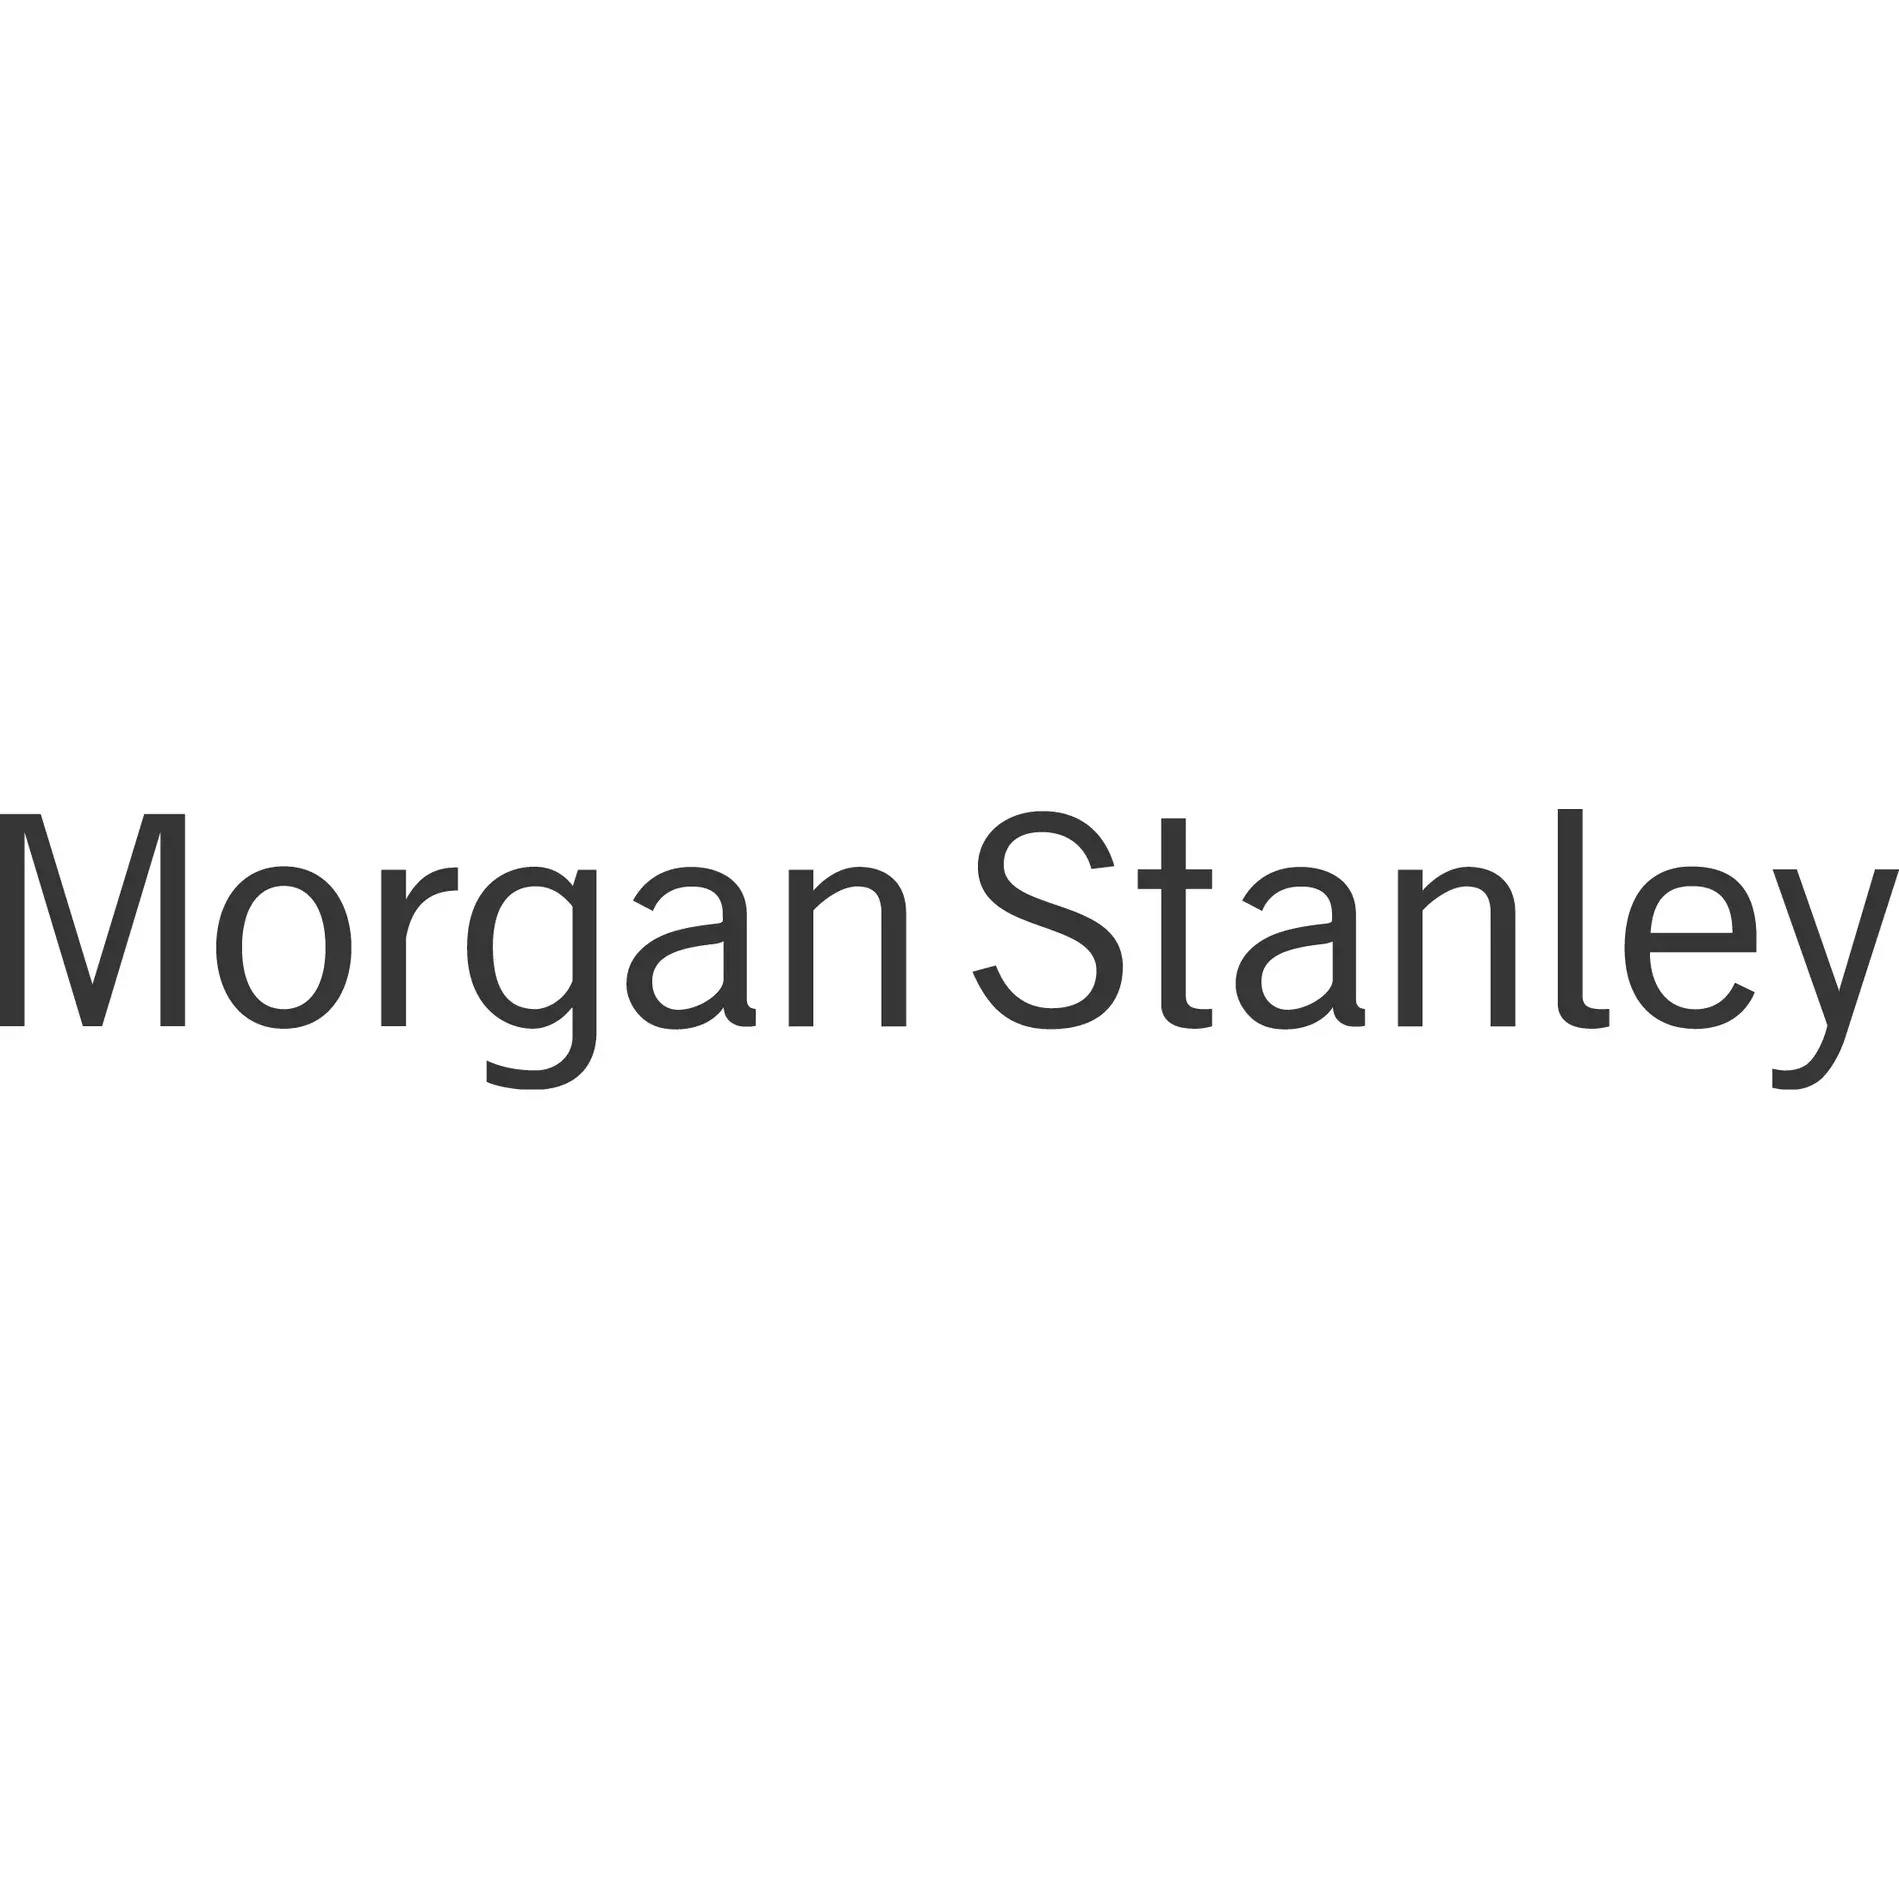 The Travis/George Group - Morgan Stanley | Financial Advisor in Fort Worth,Texas